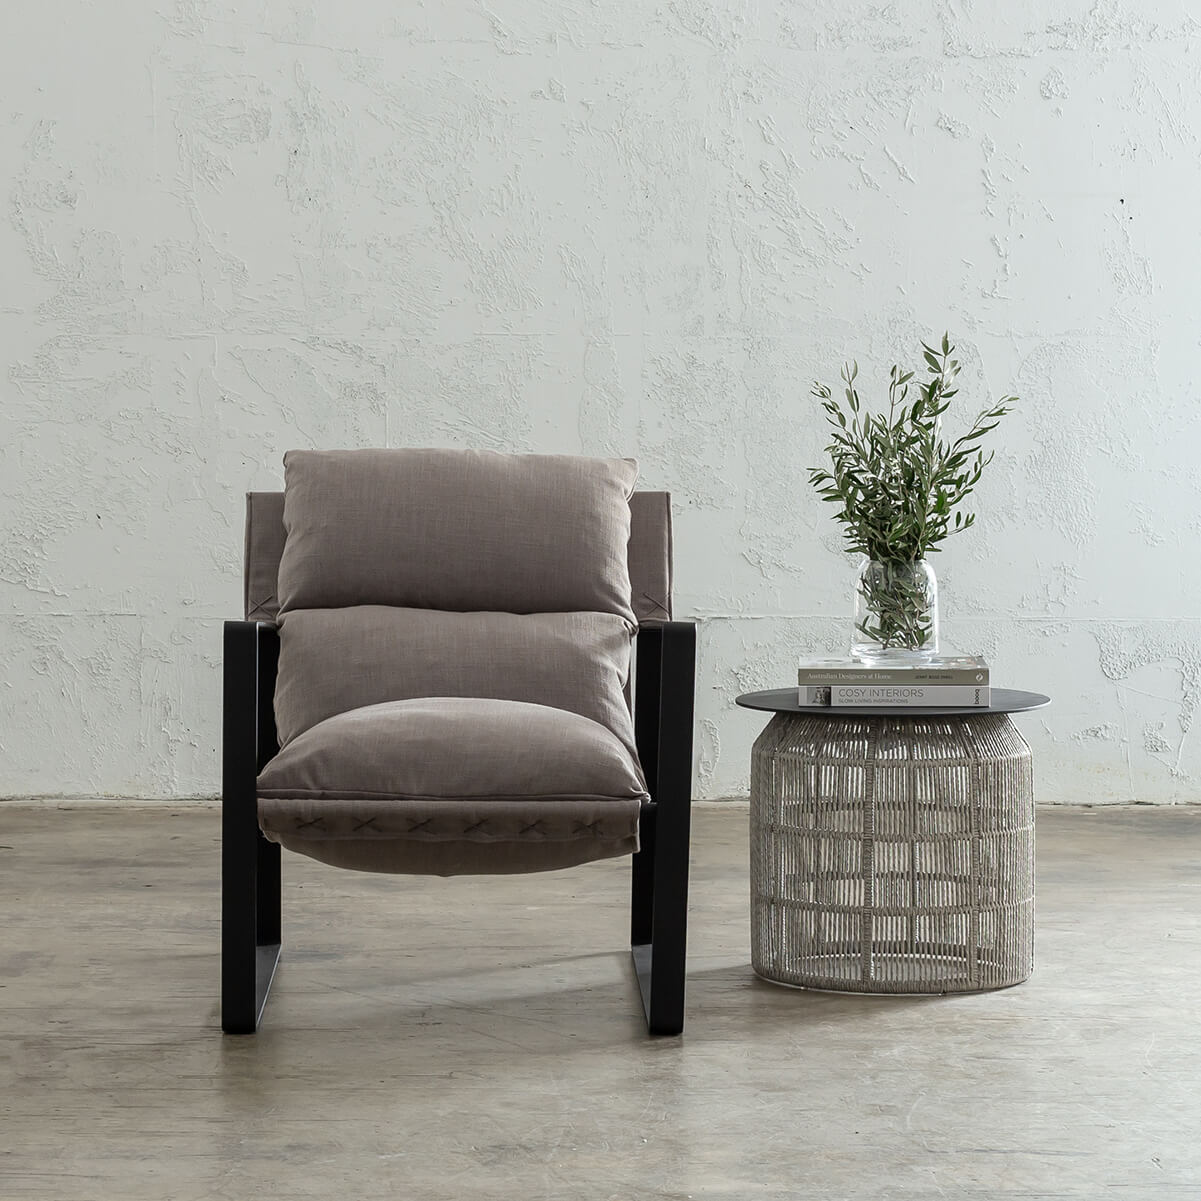 LAURENT ARM CHAIR  |  COCONUT HUSK  |  FABRIC UPHOLSTERED OCCASIONAL CHAIR